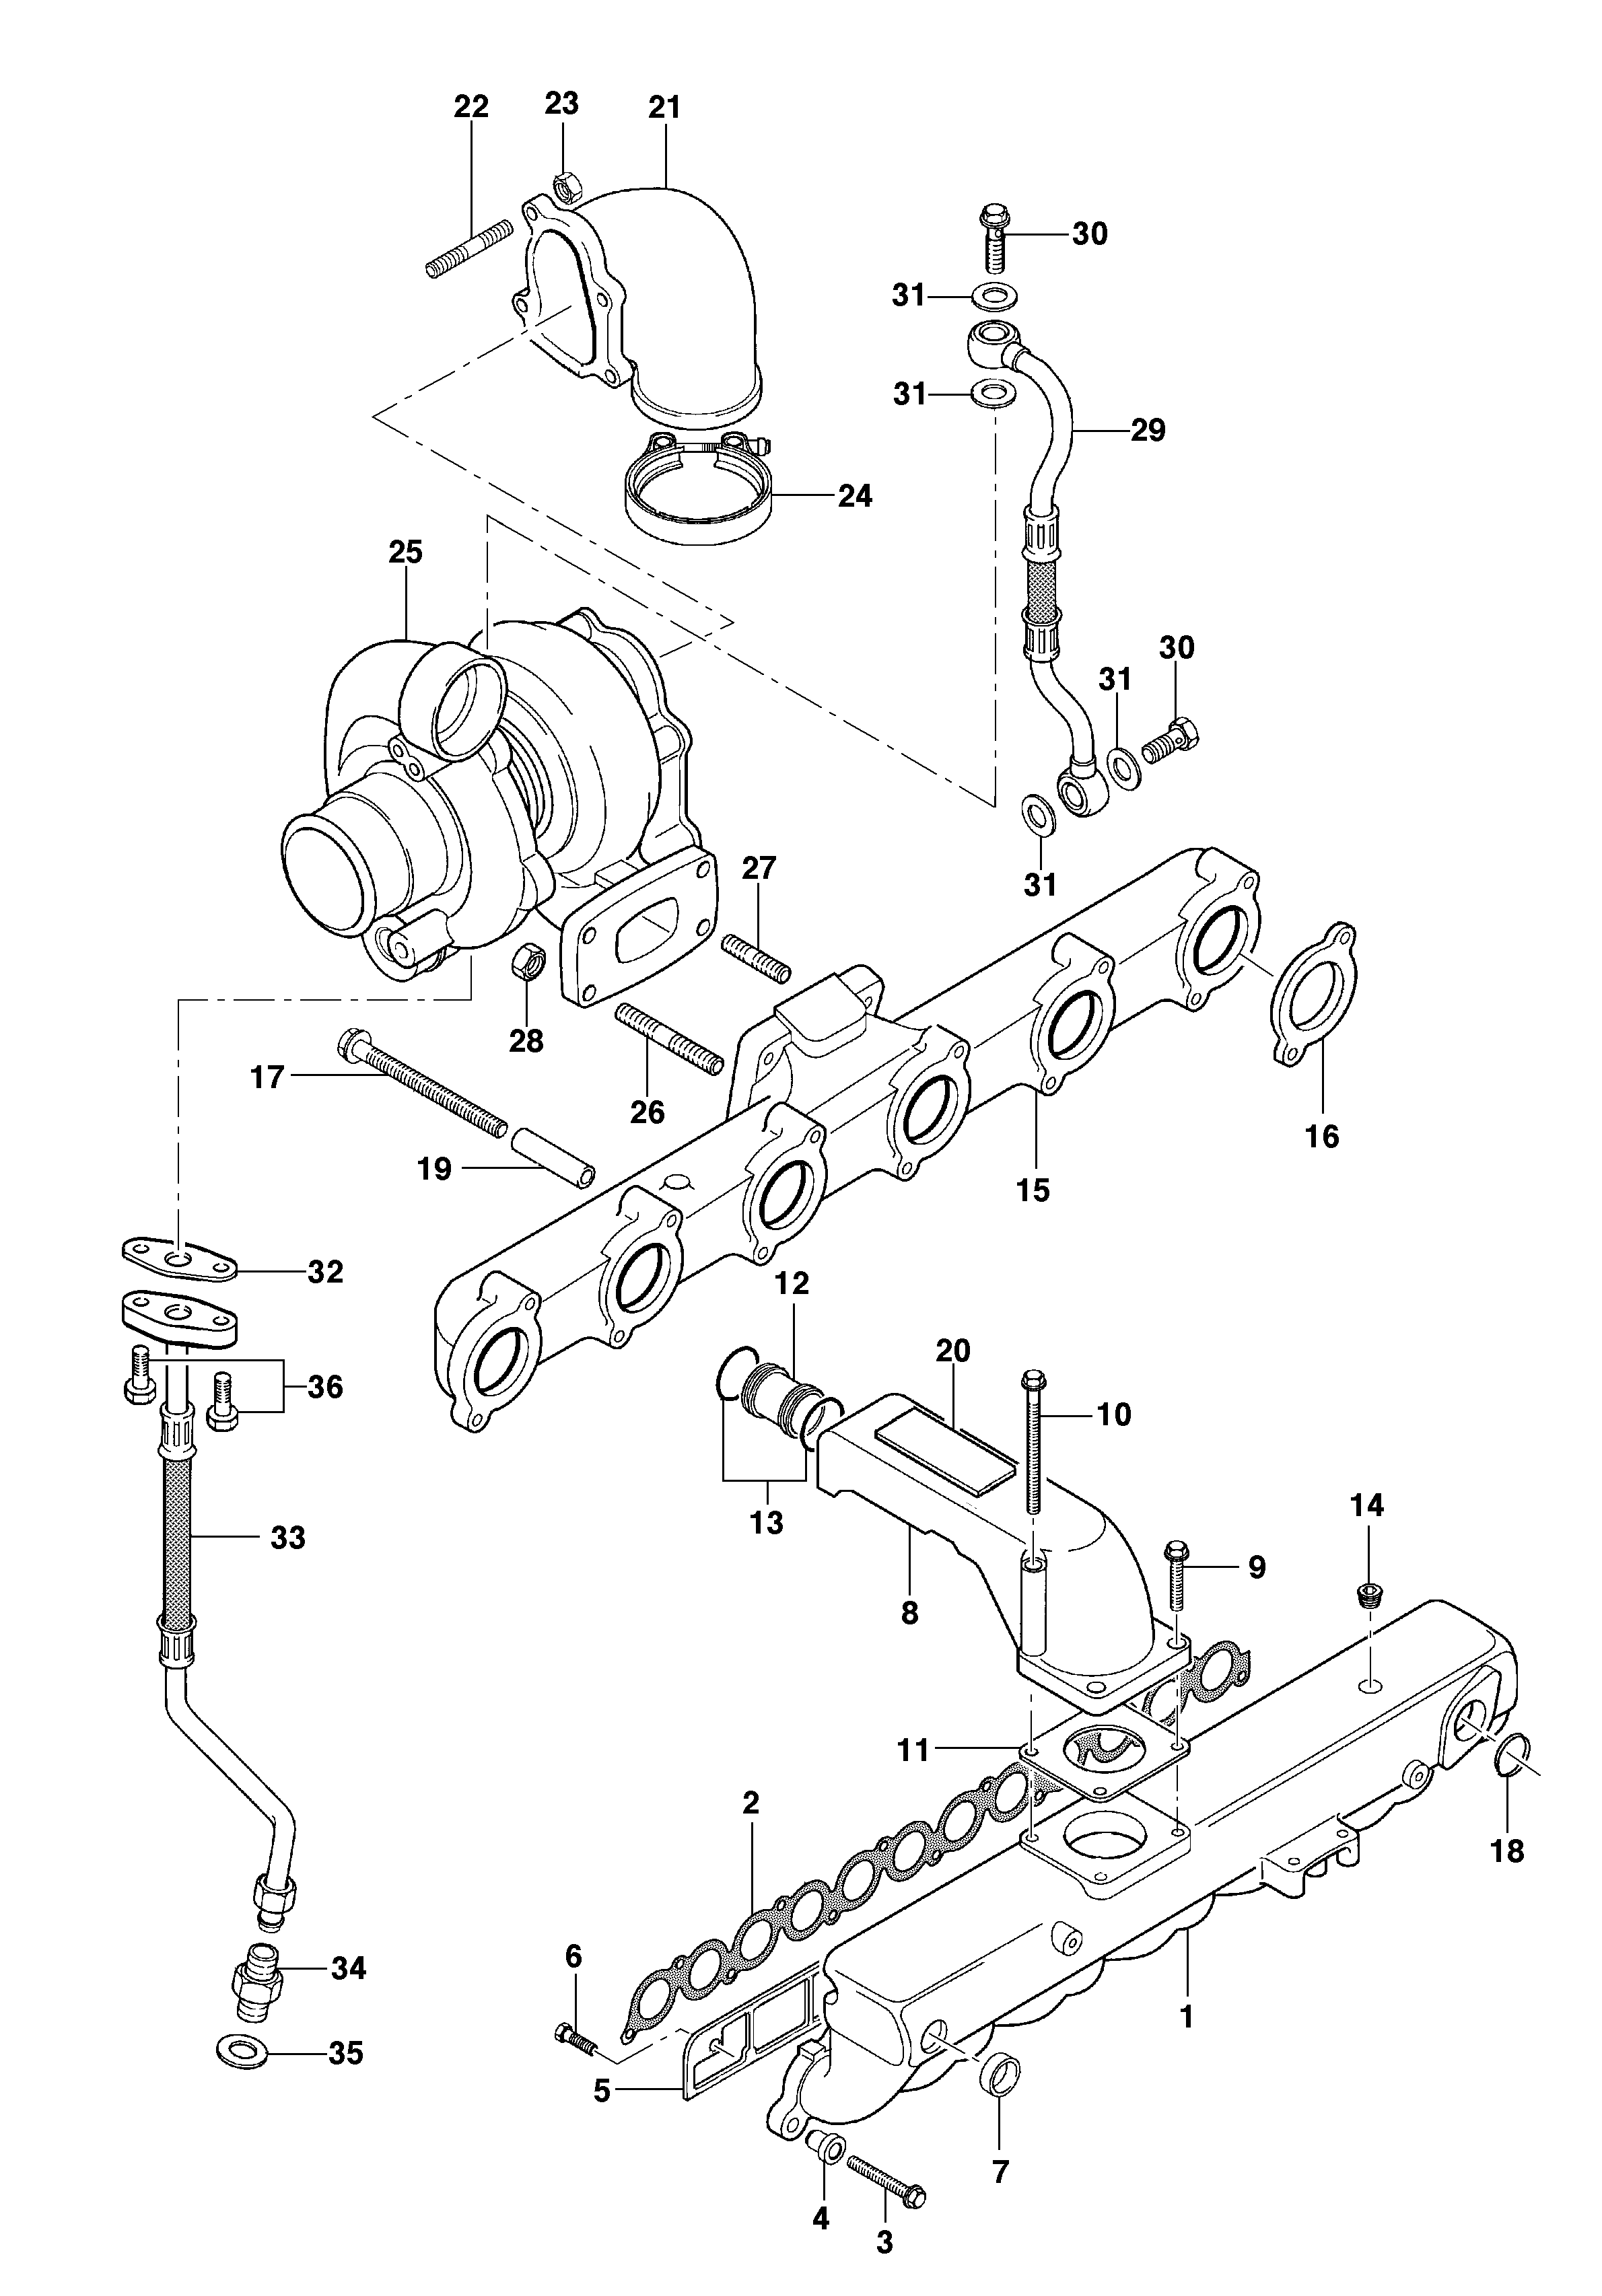 Turbocharger Intake And Exhaust Manifolds